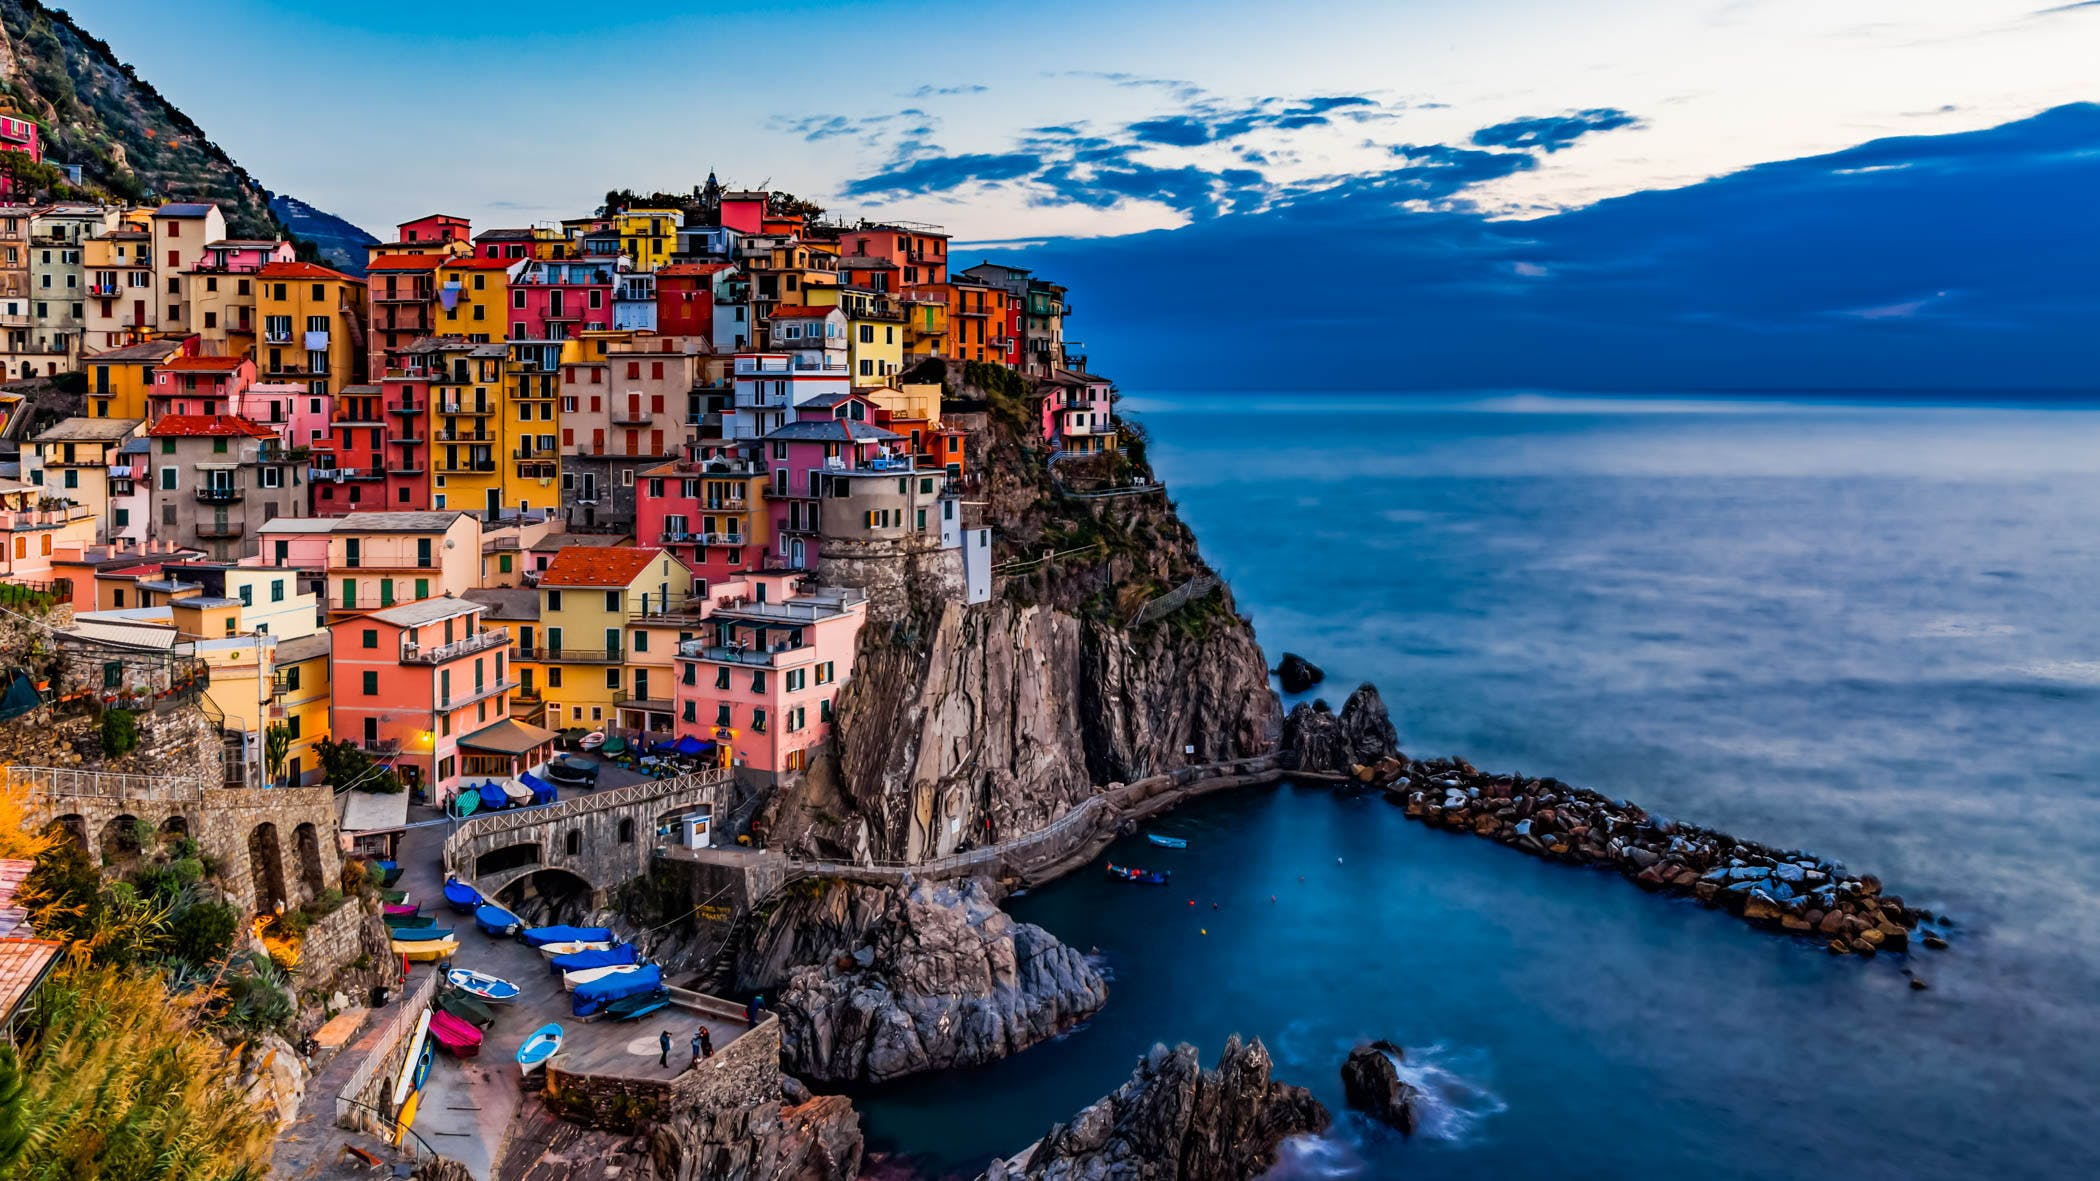 Day Trips to Cinque Terre from Florence